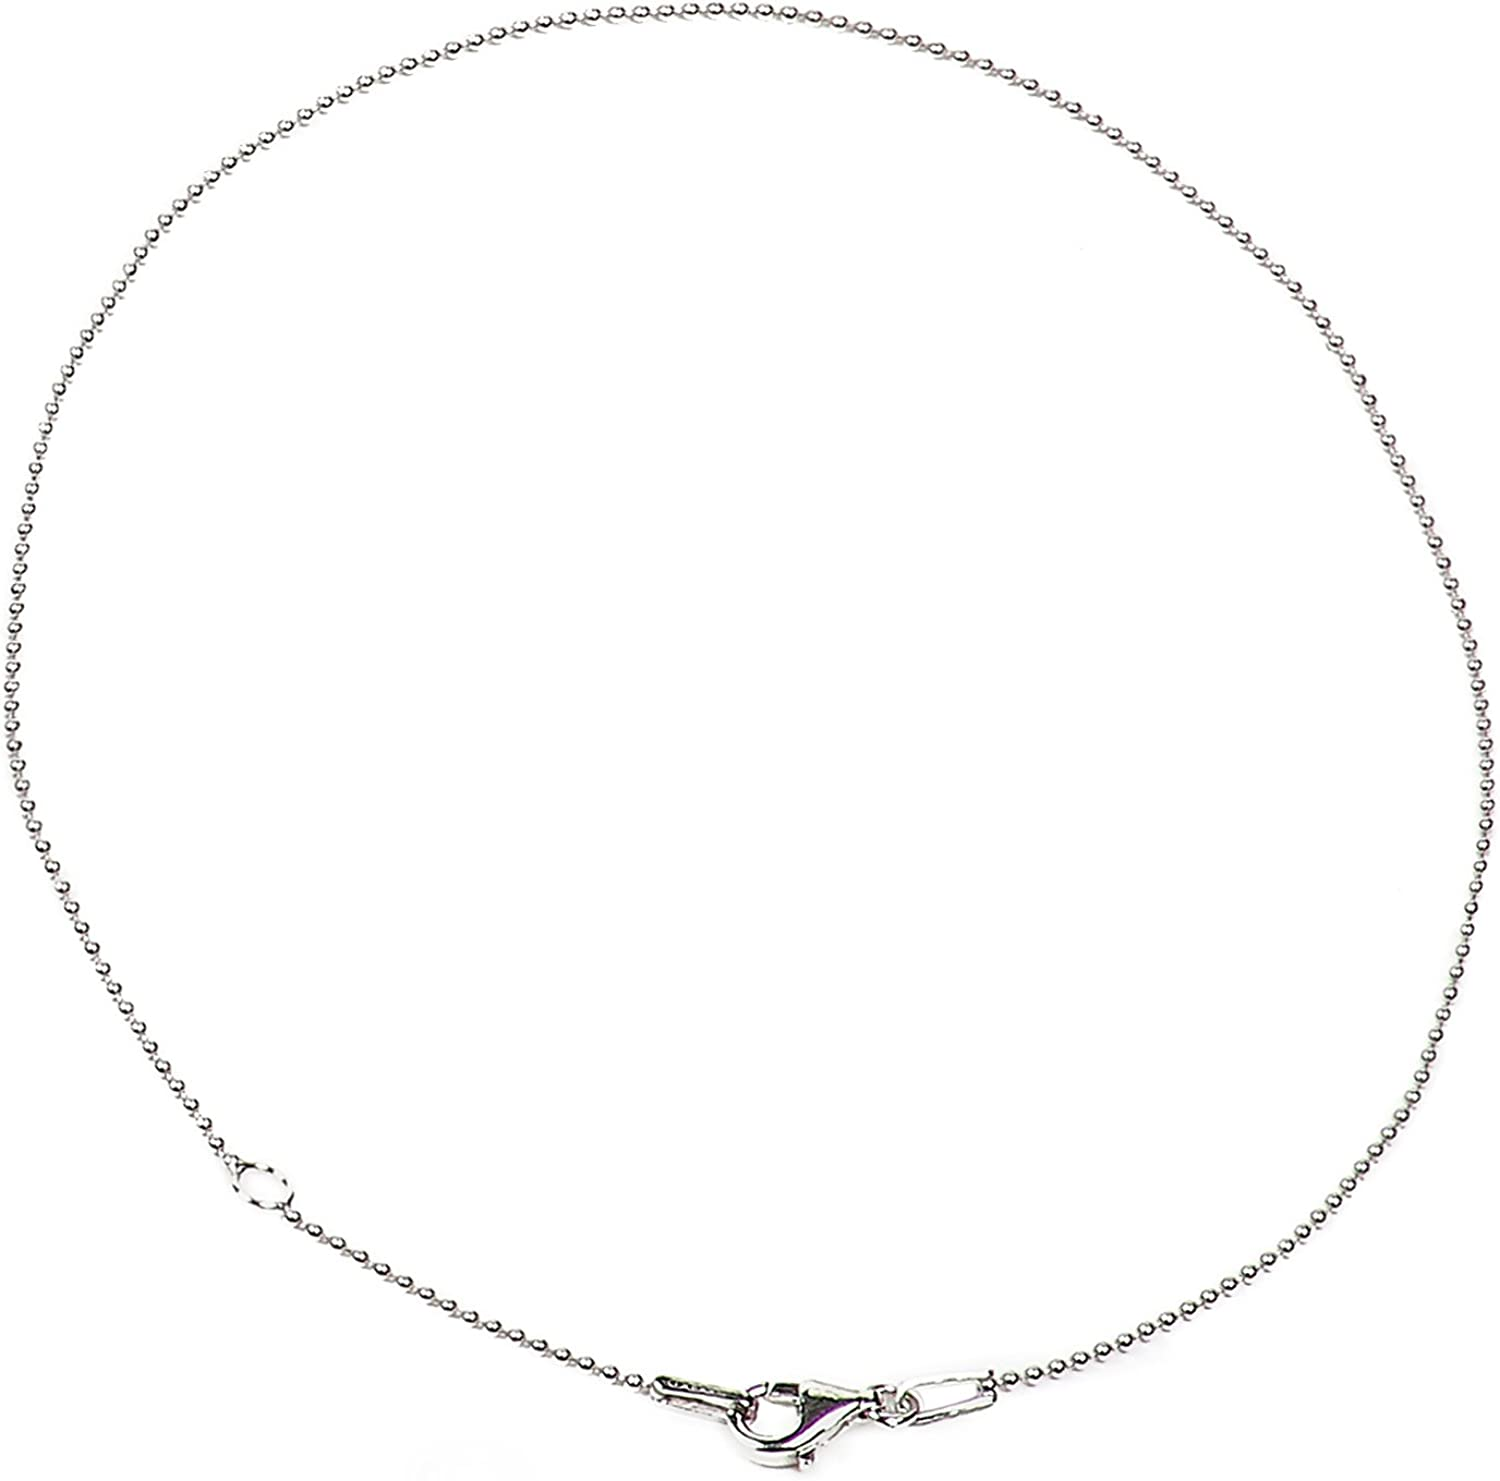 Italian Quality Chain 925 Sterling Silver Chain | Smooth Bead Chain Necklaces for Women or Men and Bracelets for Women or Mens Bracelet | Anti Tarnish